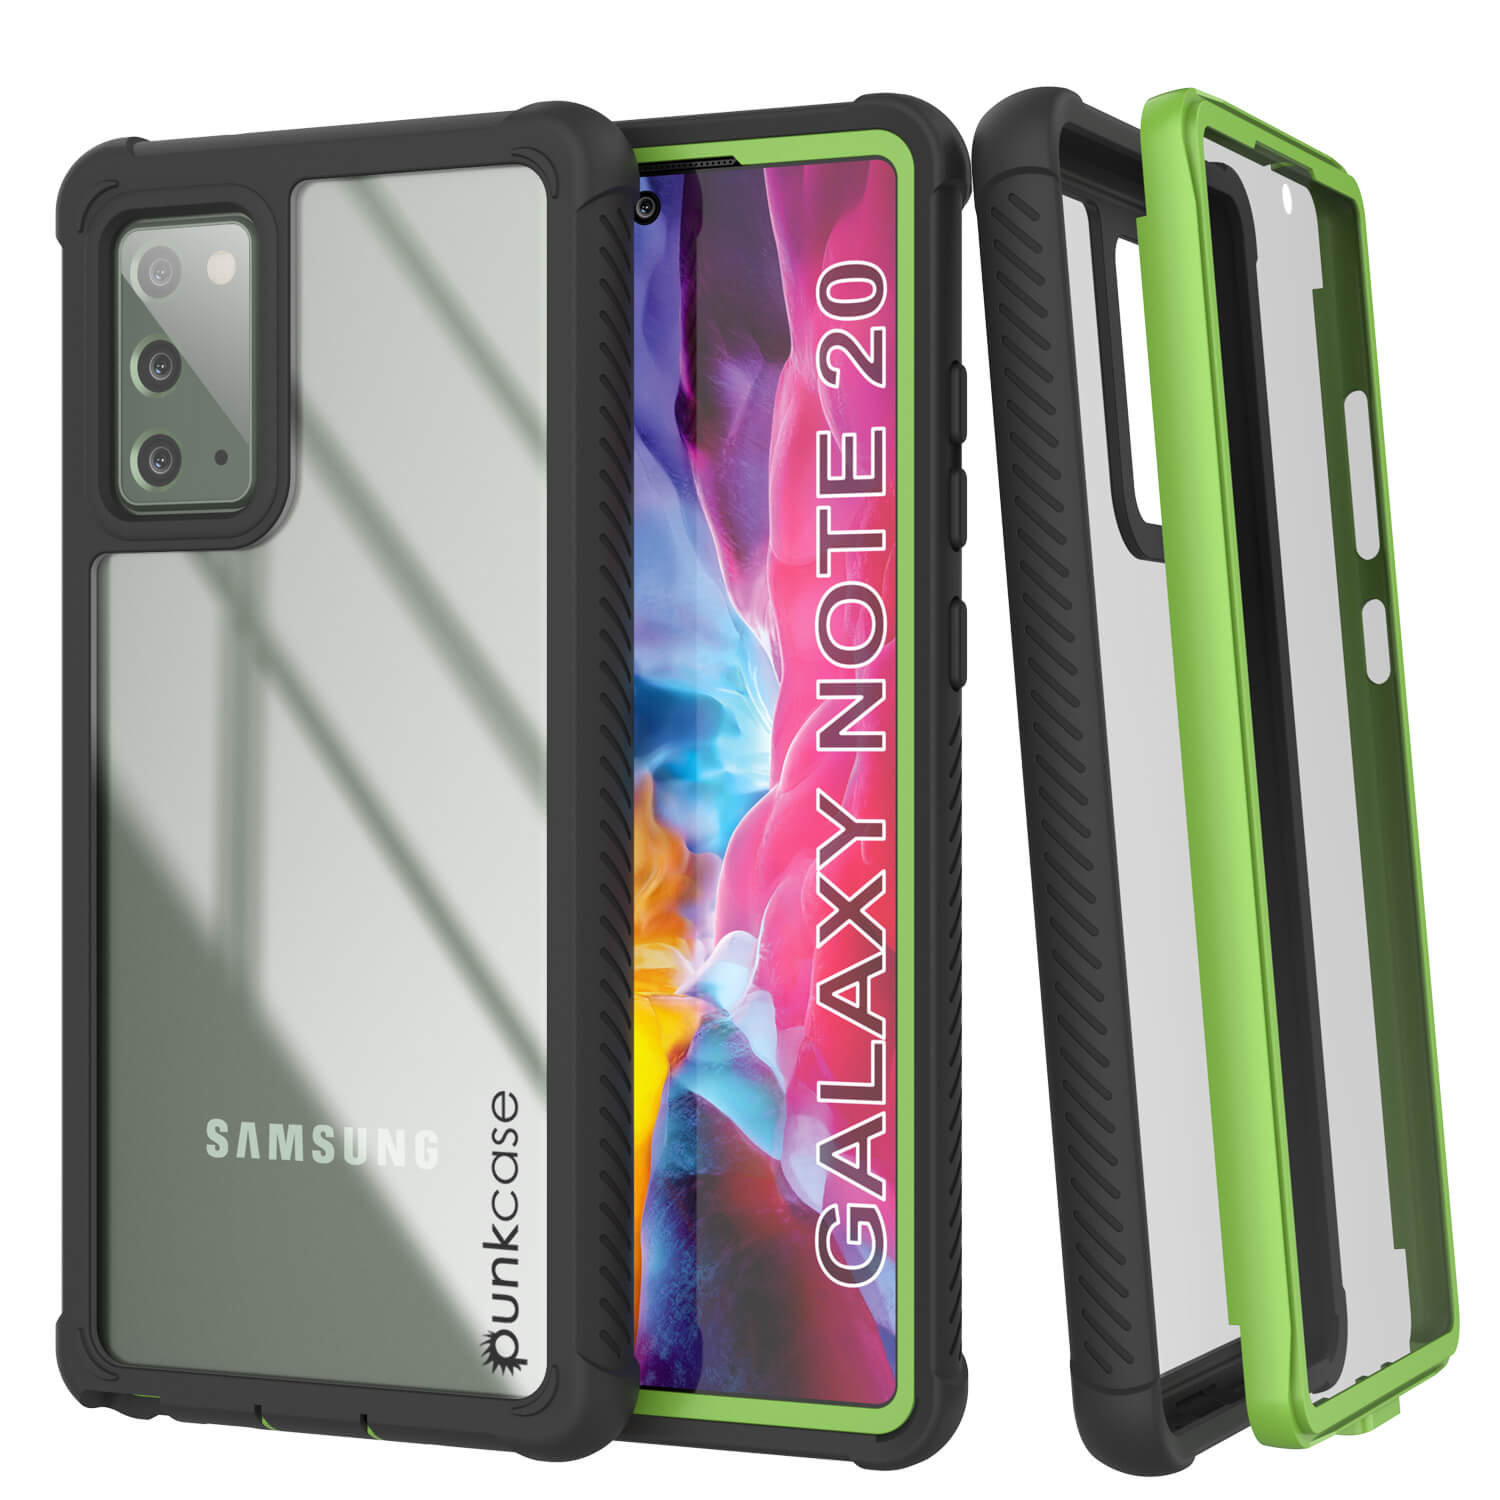 Punkcase Galaxy Note 20 Case, [Spartan Series] Light Green Rugged Heavy Duty Cover W/Built in Screen Protector